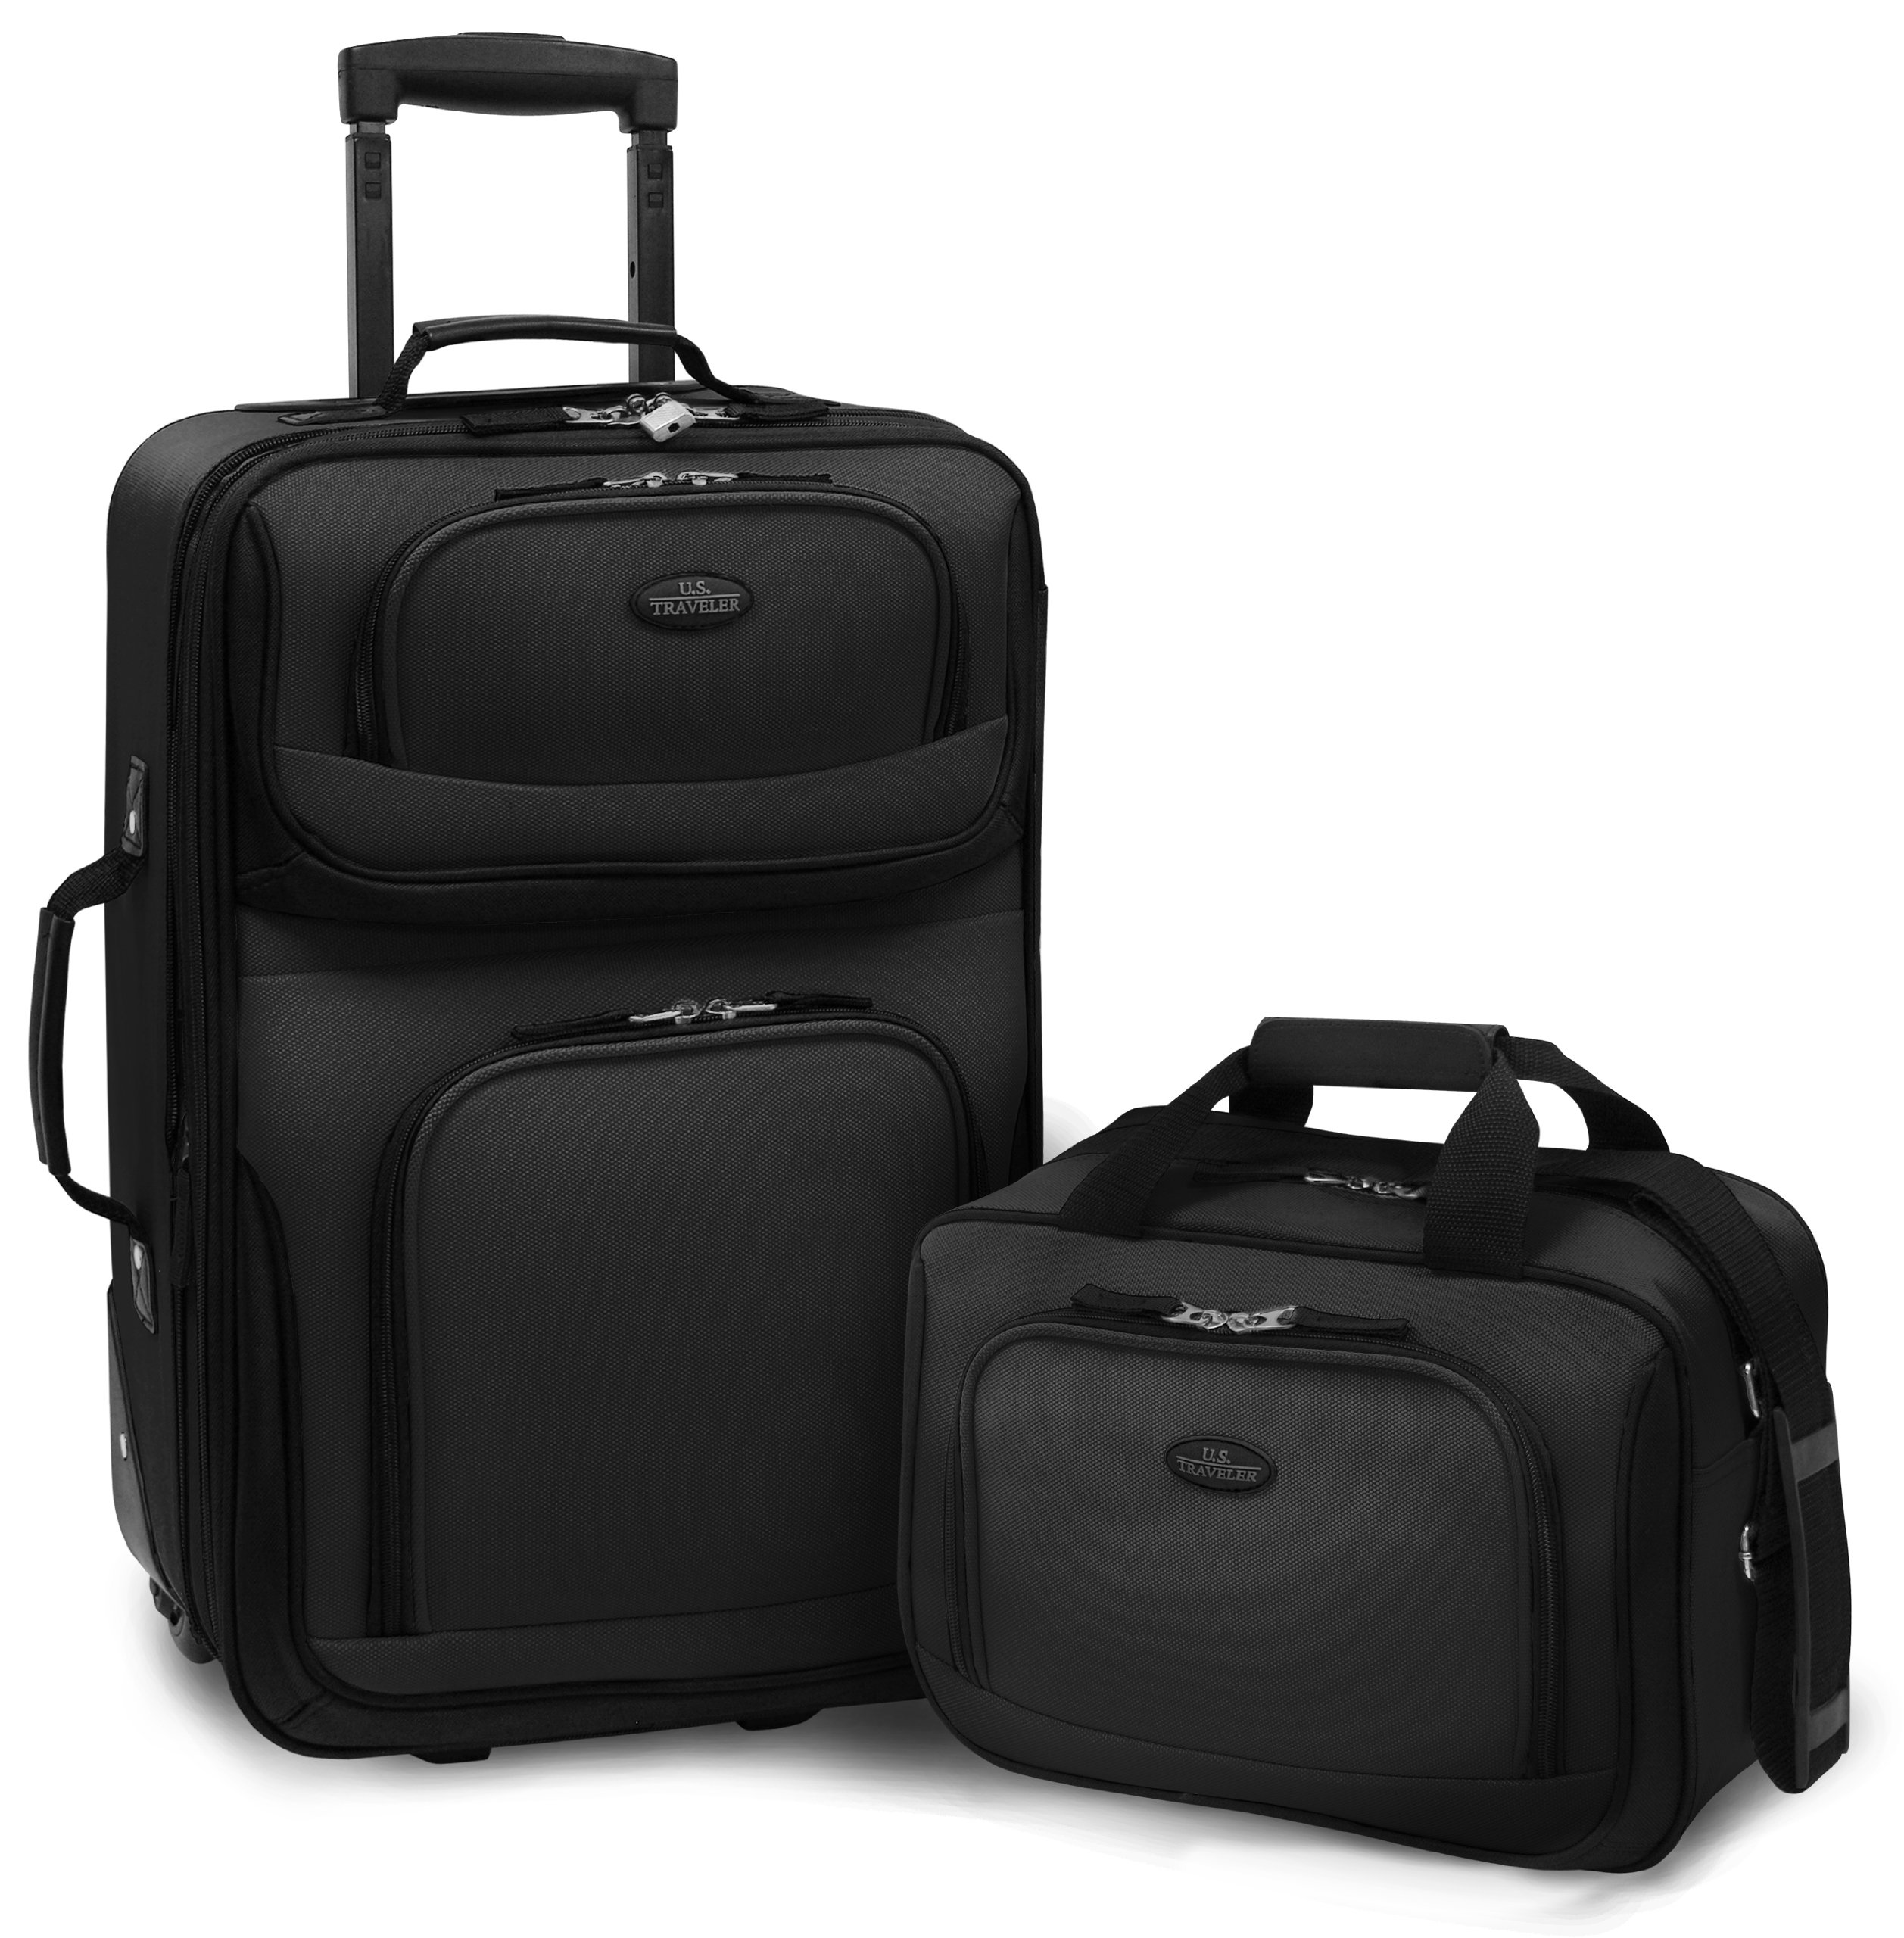 U.S. Traveler – RIO 2-Piece Expandable Carry-On Luggage Set in Black